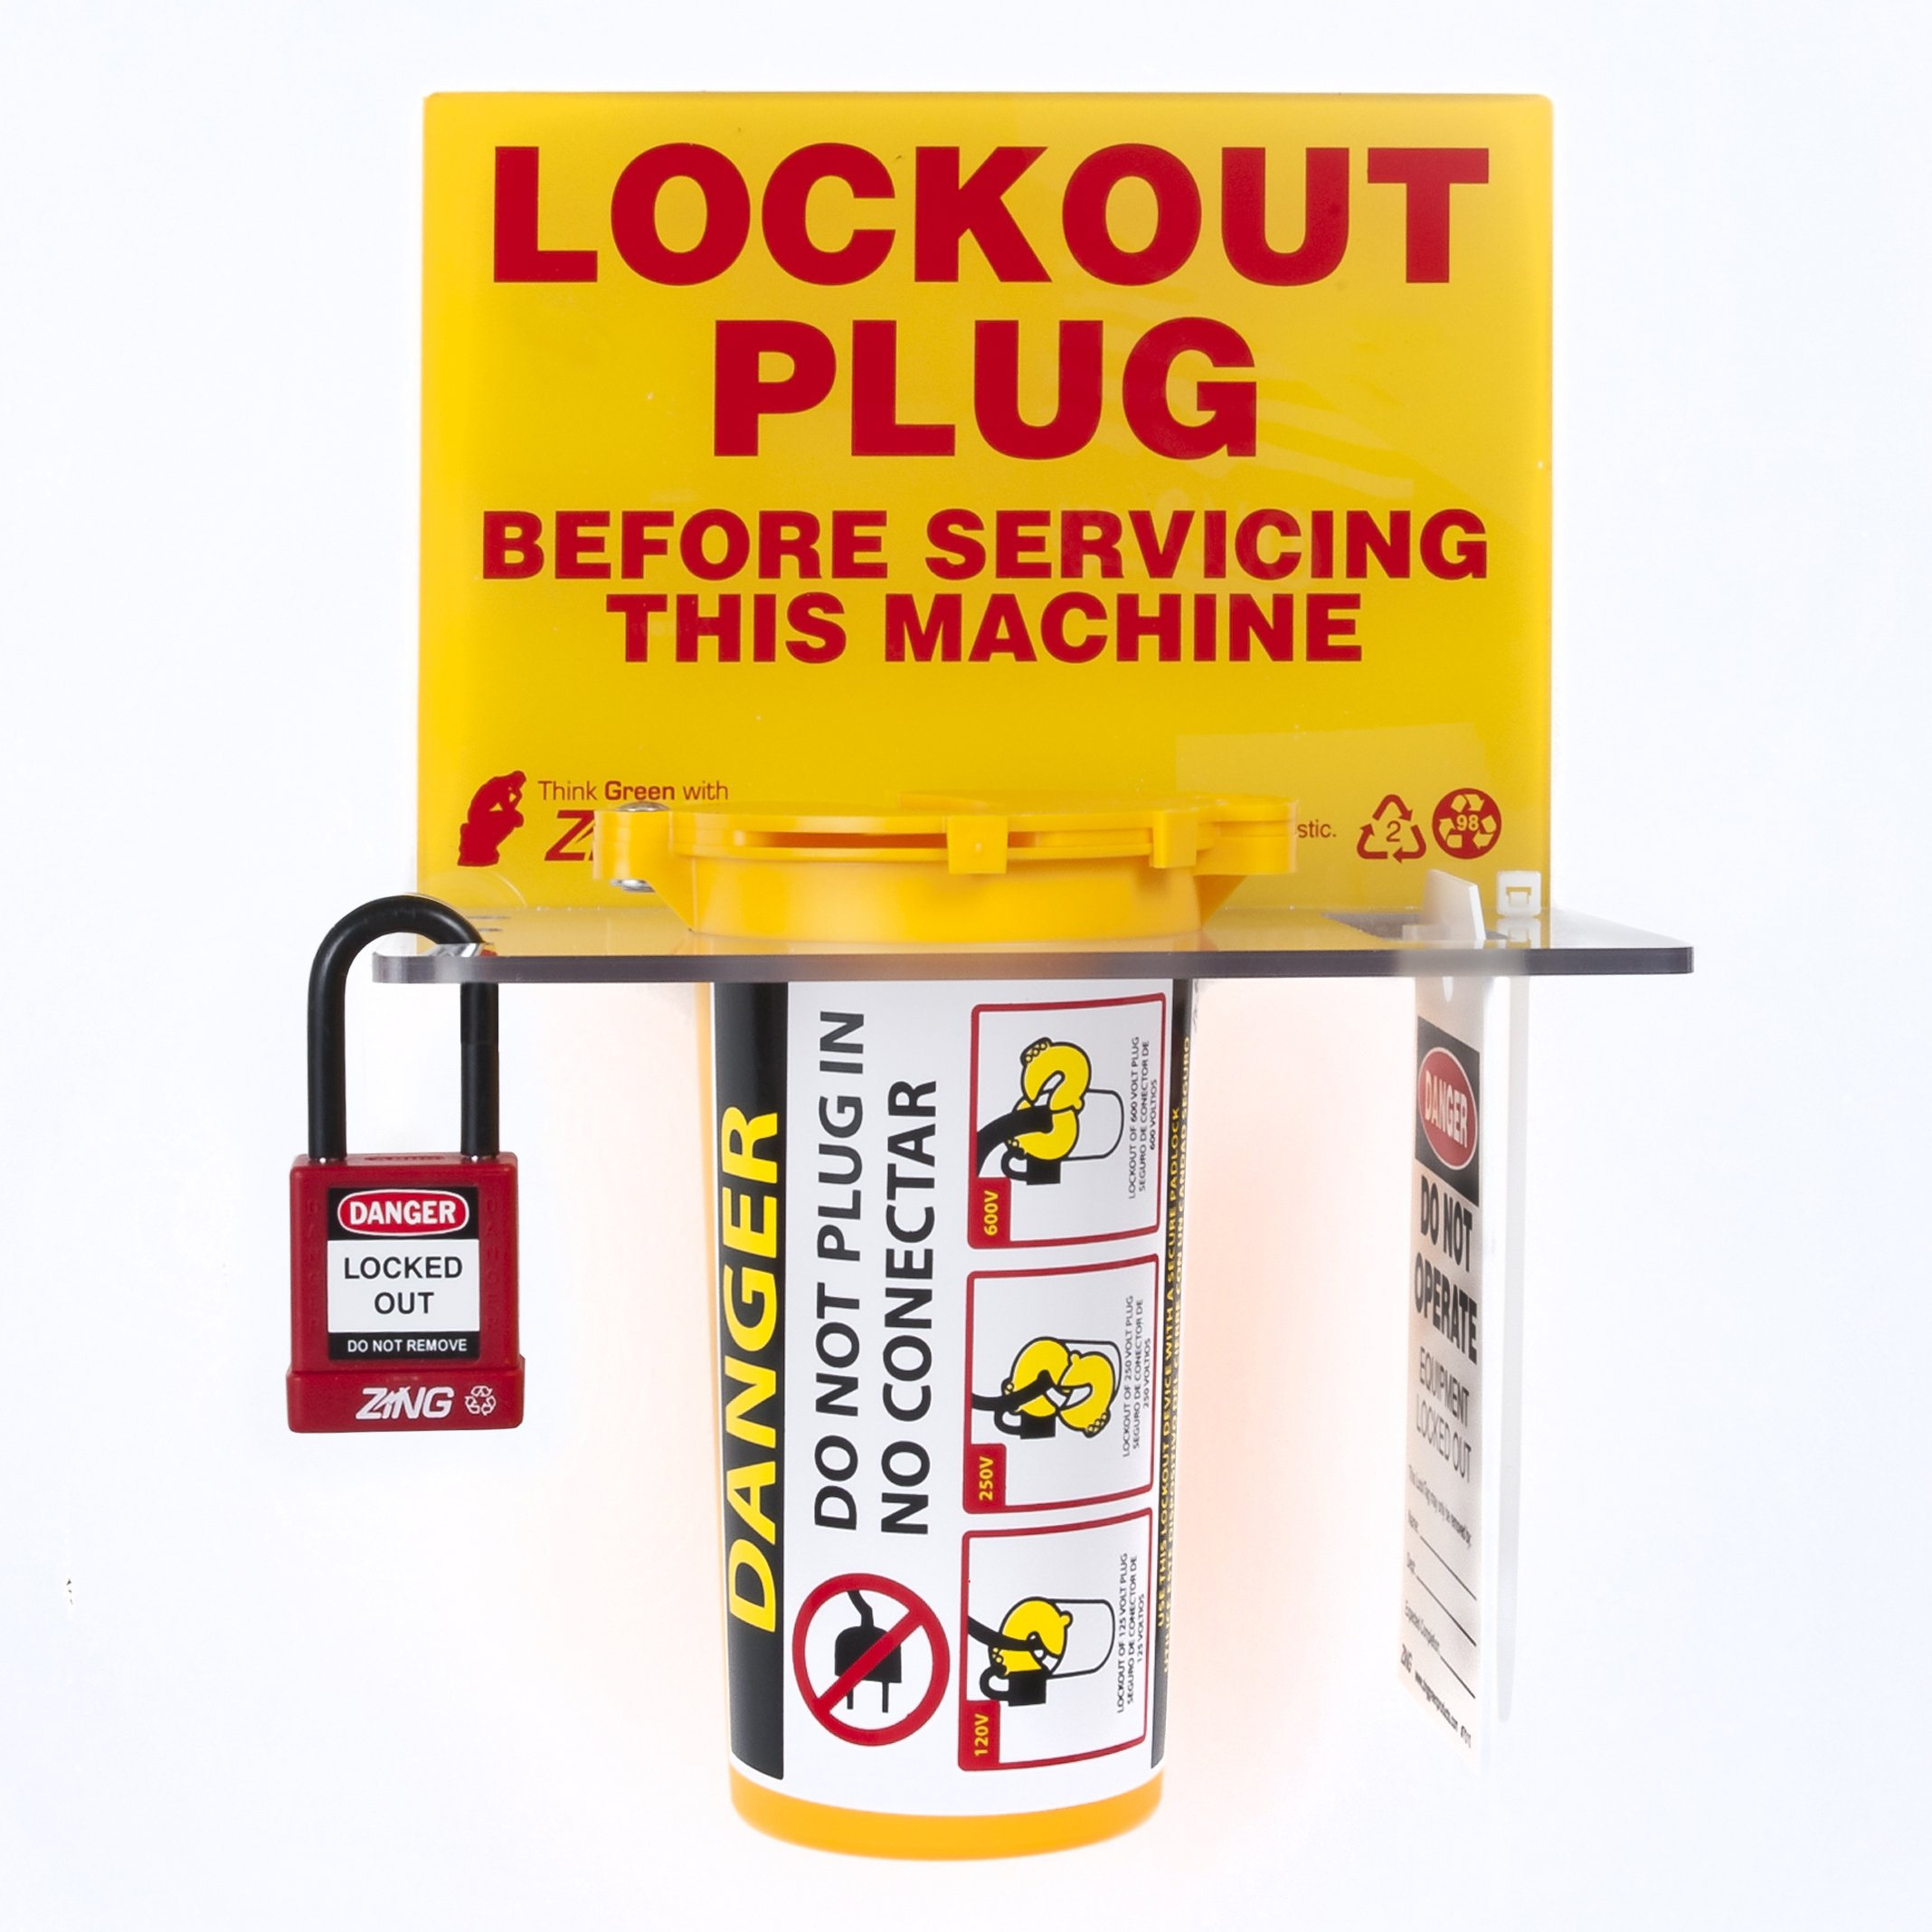 ZING 7117 RecycLockout Lockout Tagout Station, Plug Lockout